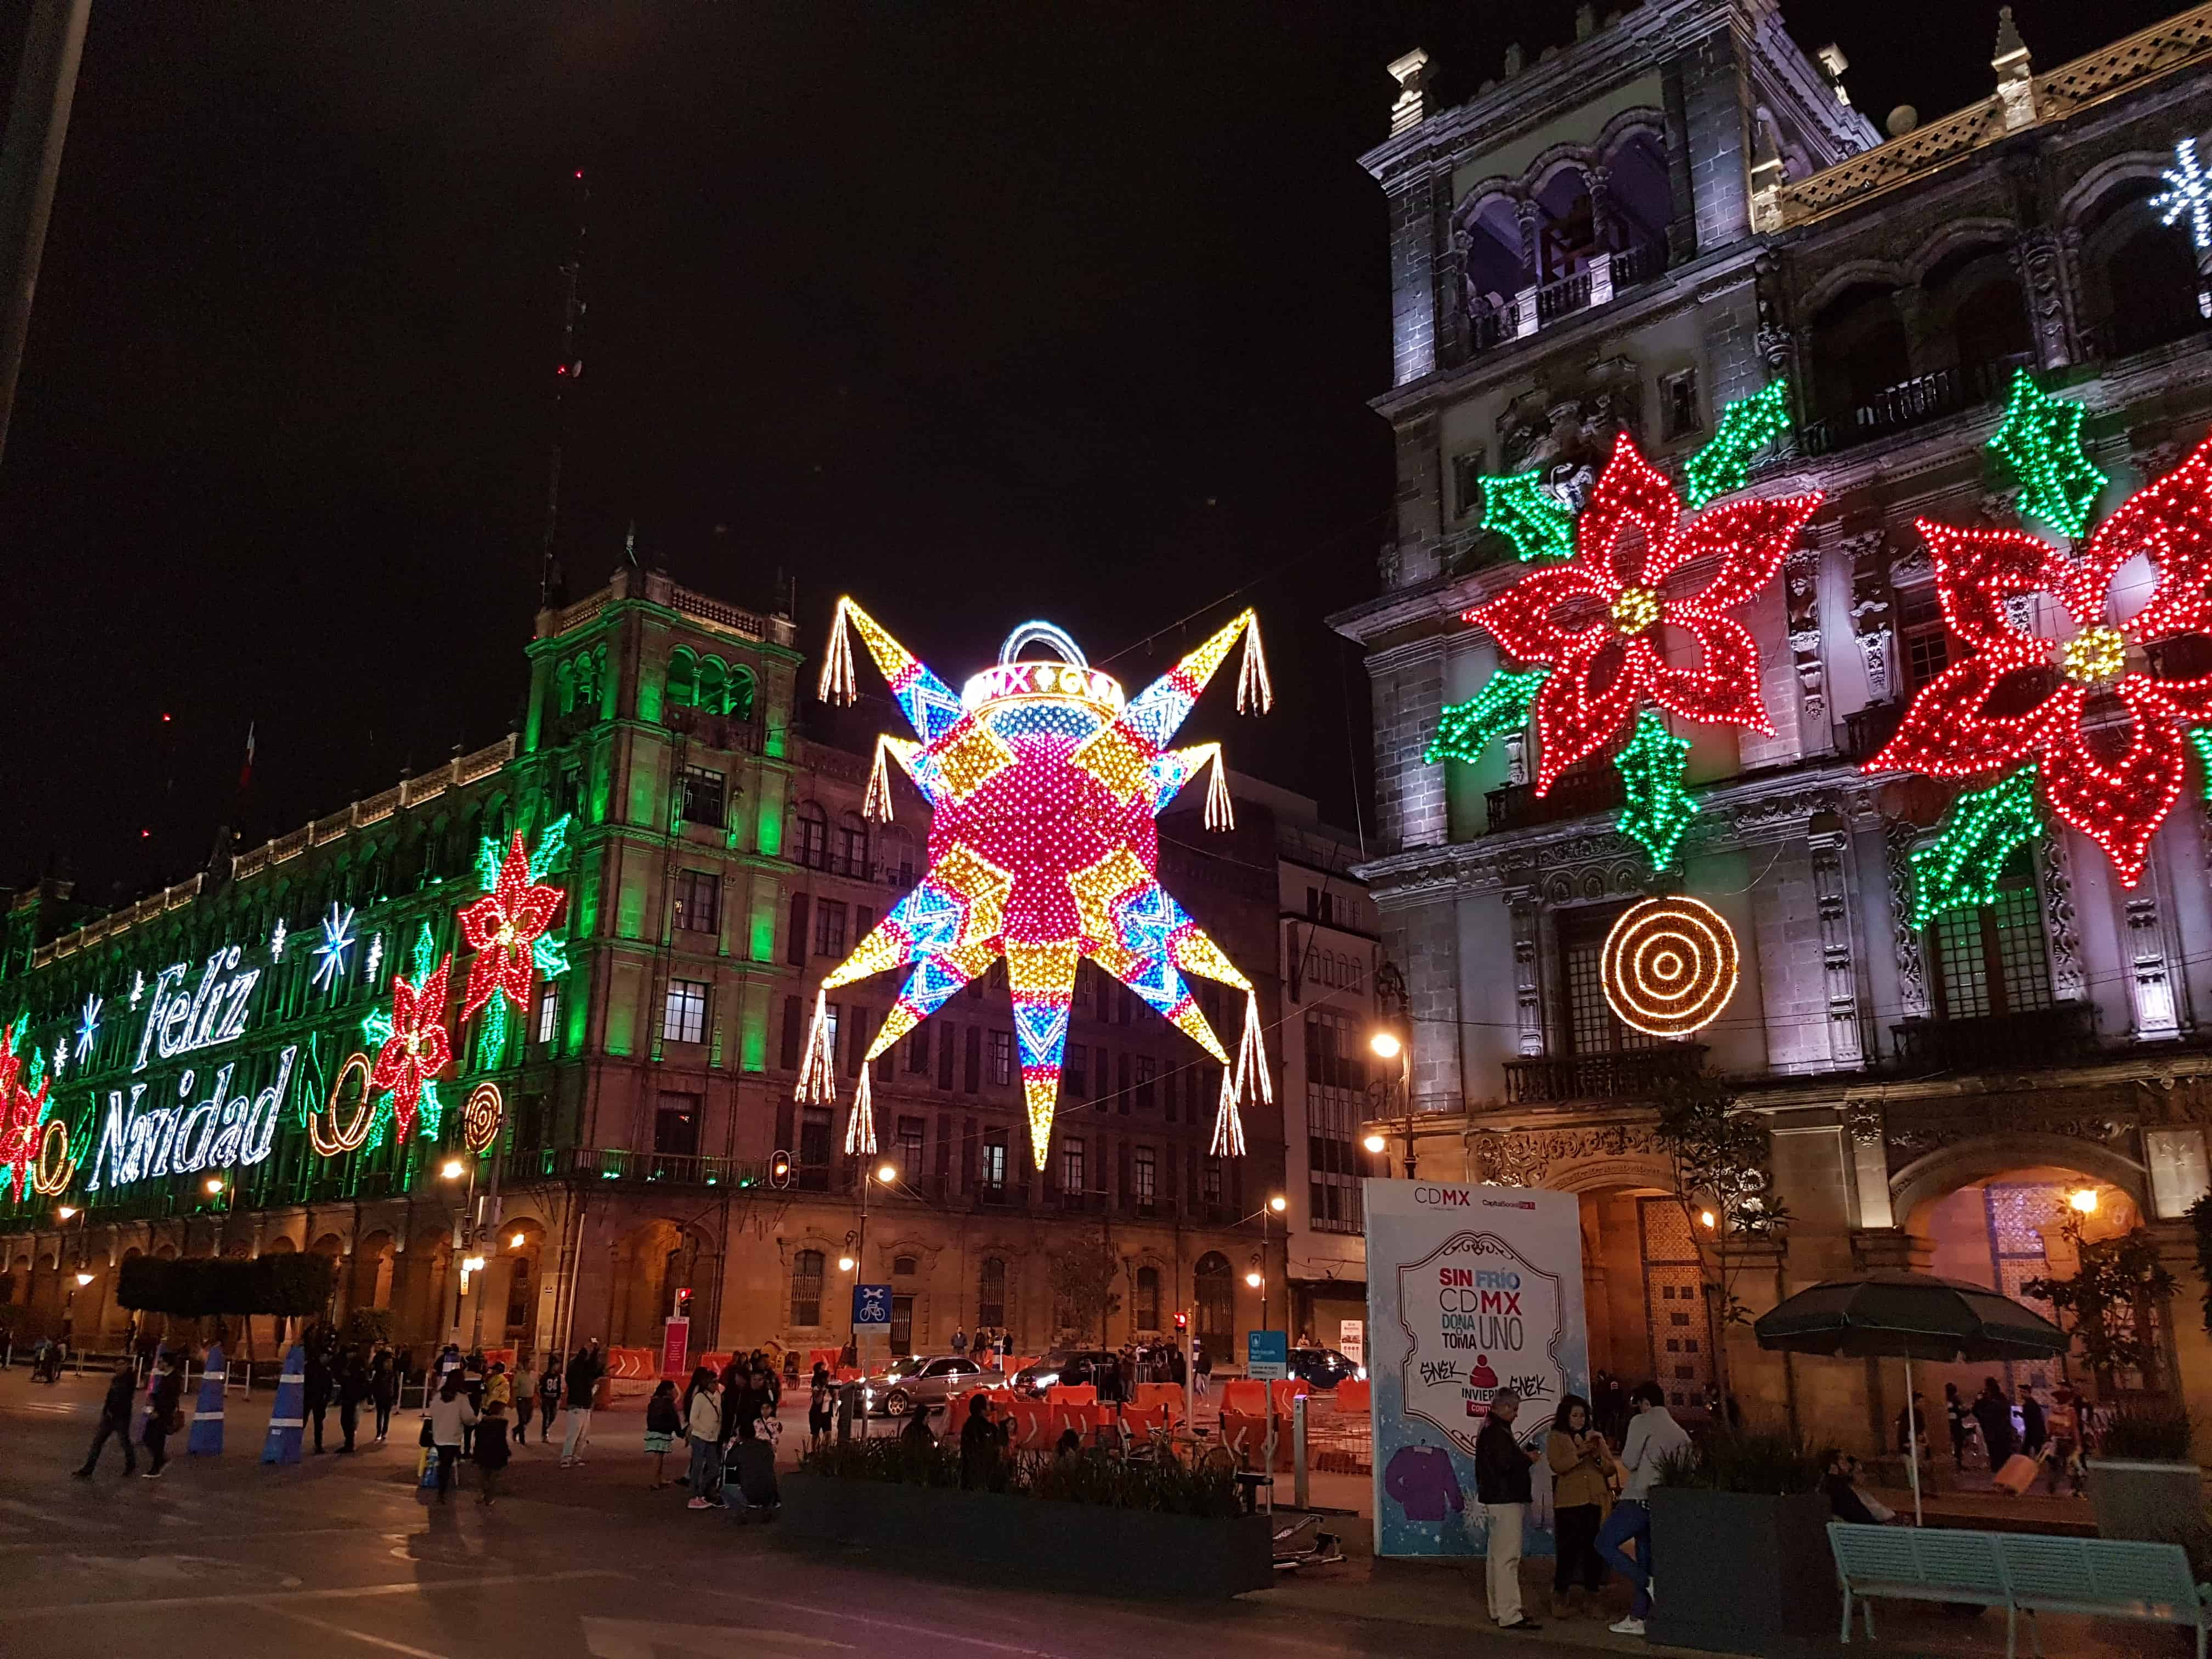 Christmas lights in Mexico City